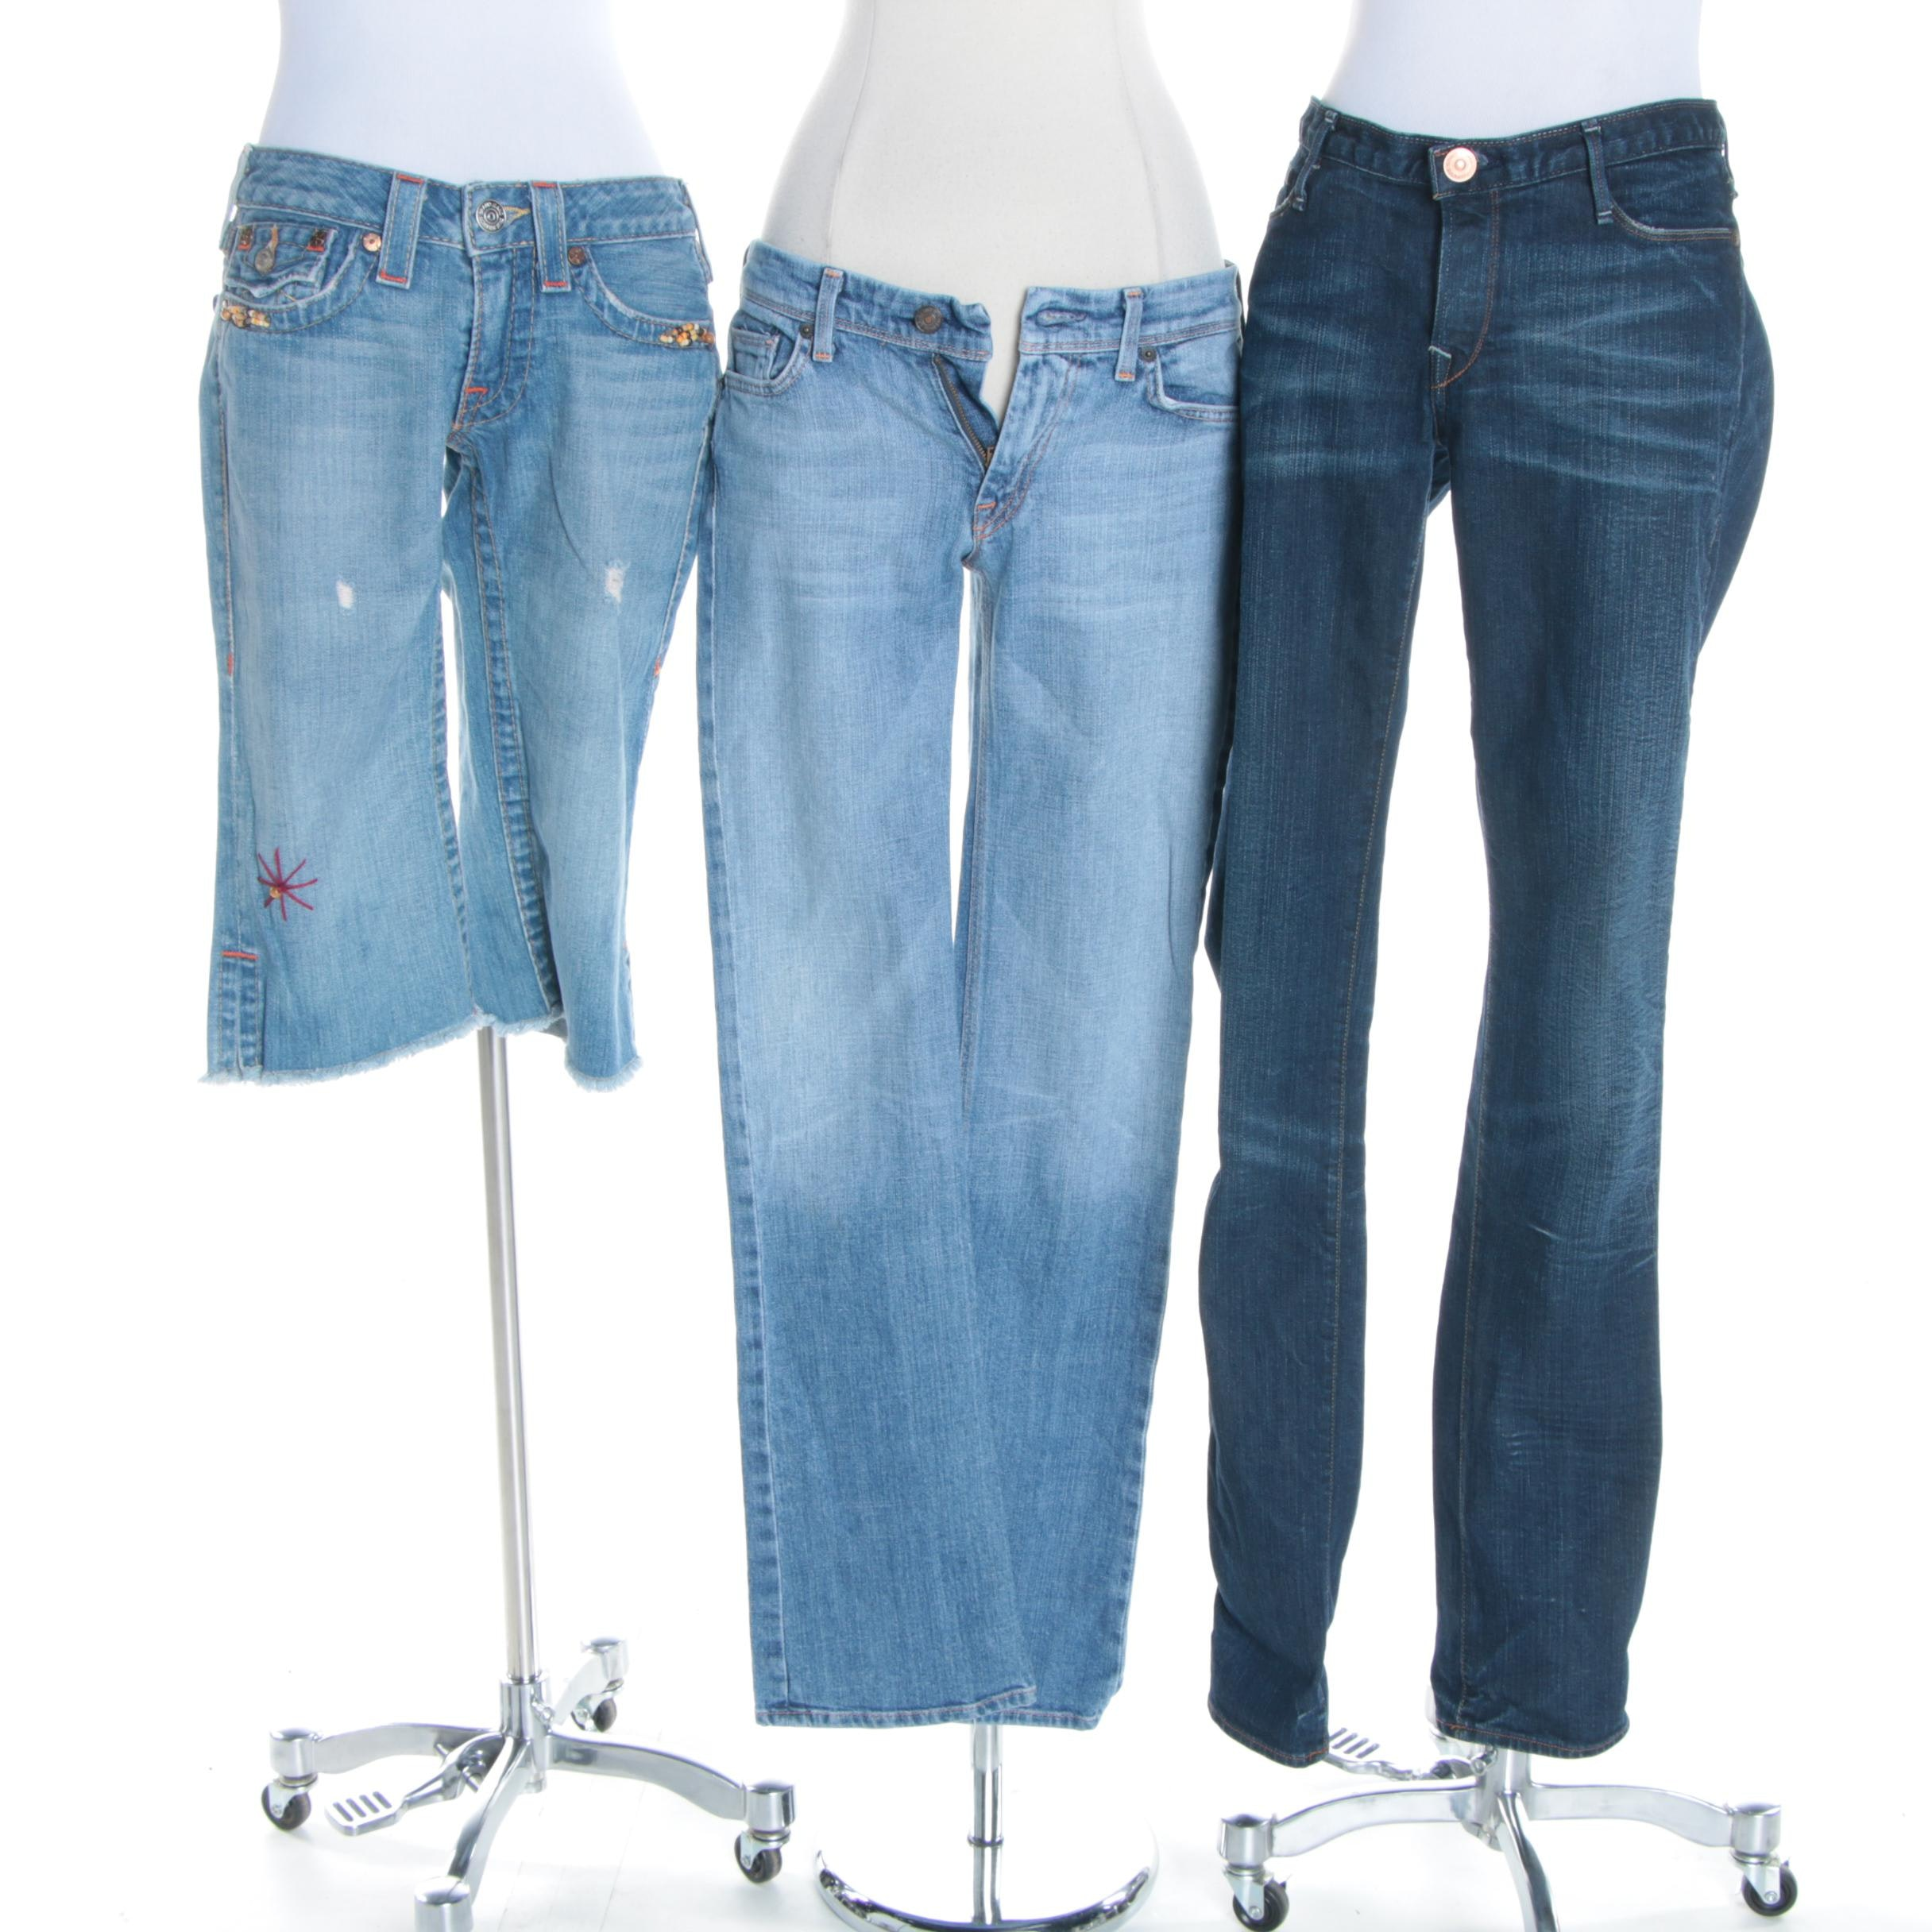 Women's Jeans and Capris Including 7 For All Mankind and True Religion